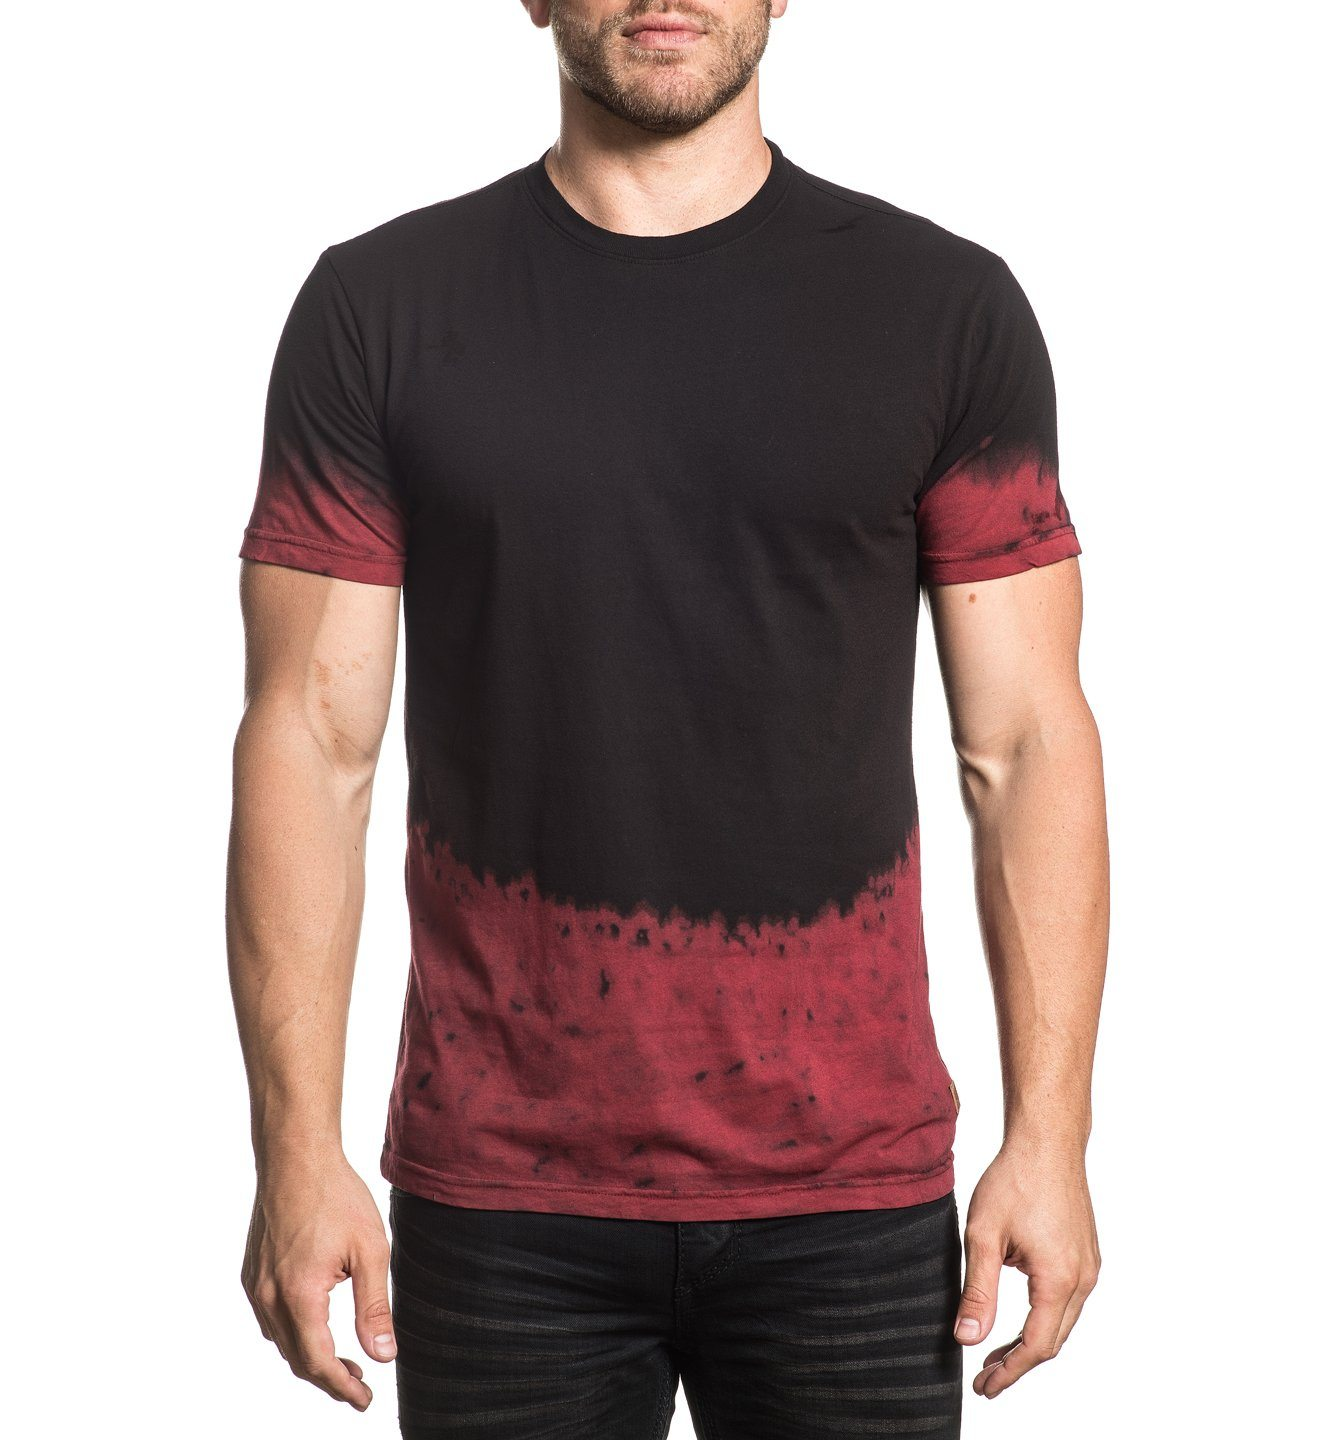 Mens Short Sleeve Tees - Standard Supply M-087